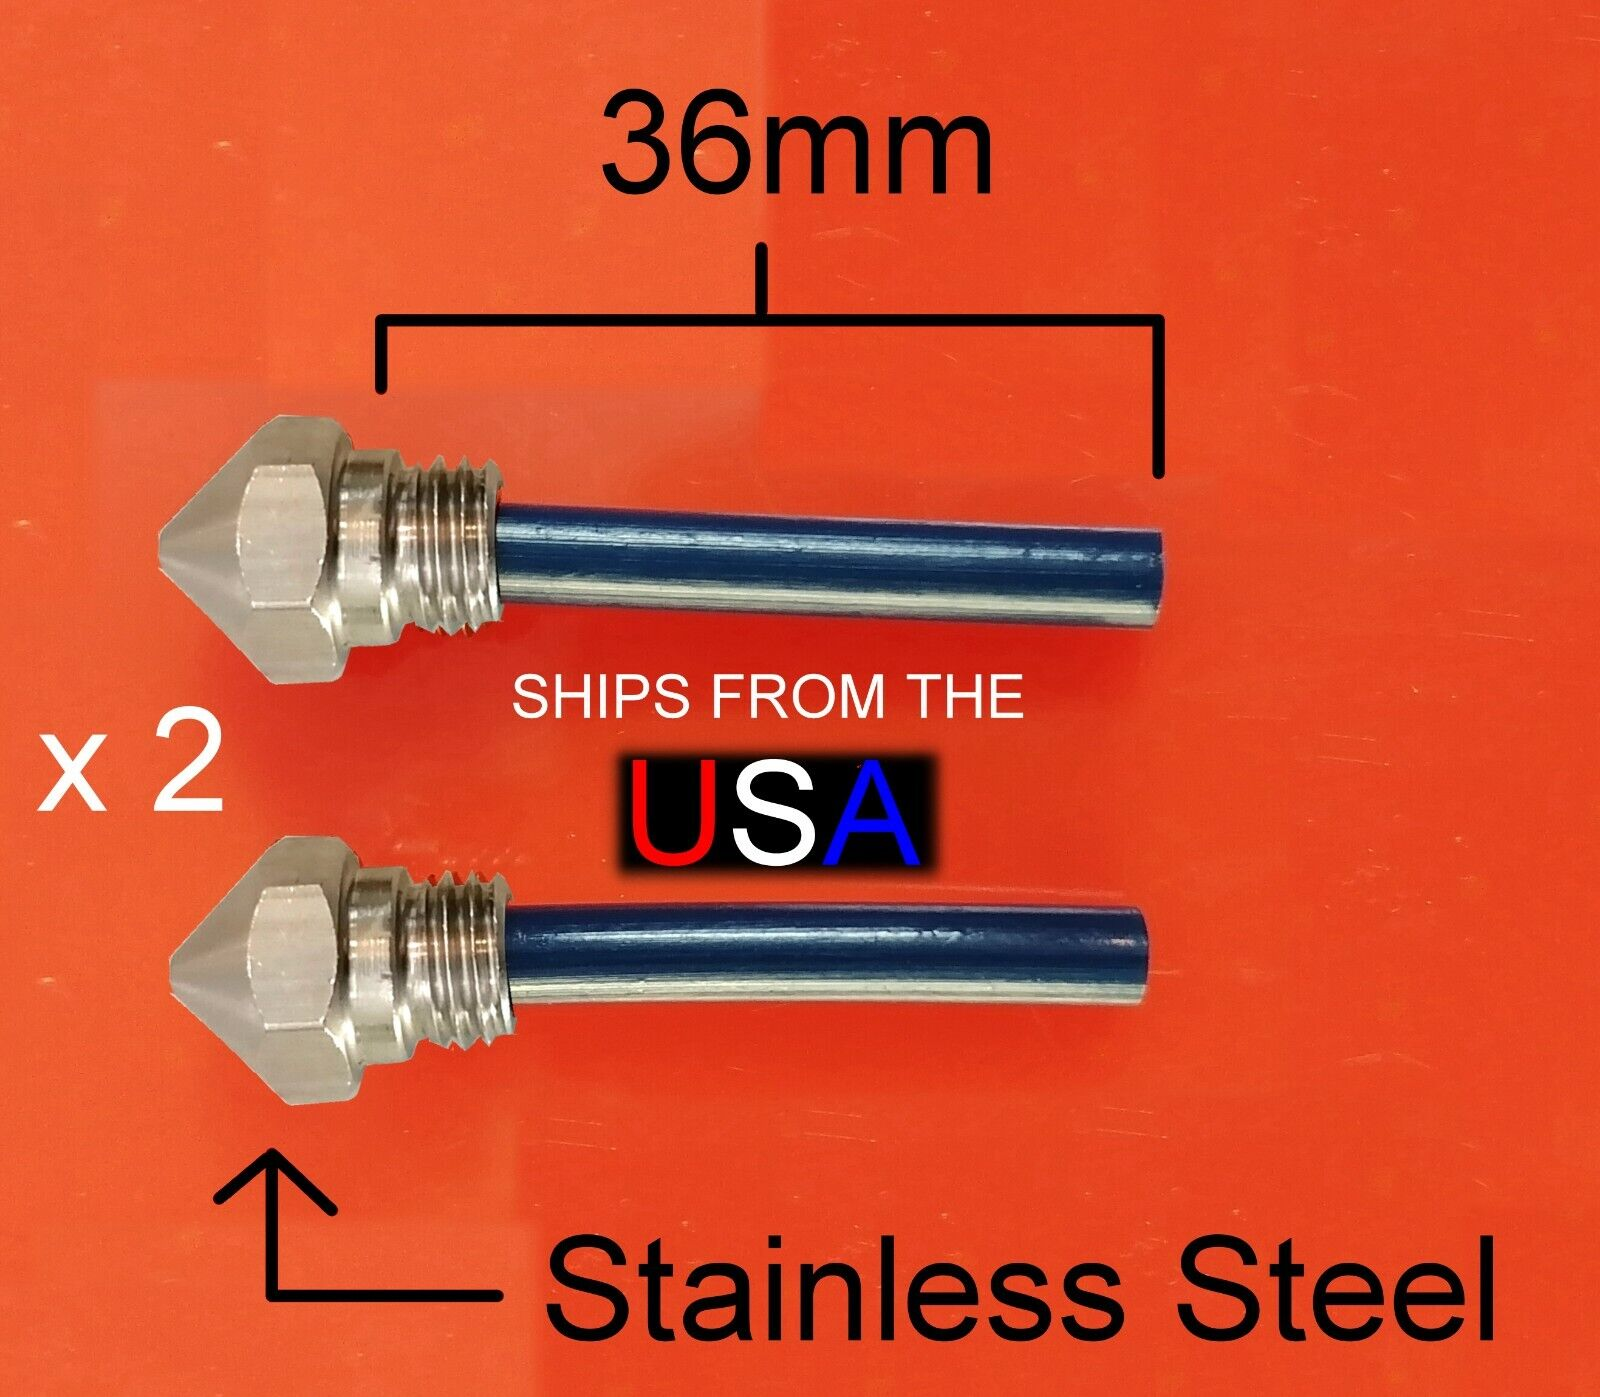 0.4mm STAINLESS Nozzle & 36mm PTFE Tube For QIDI X-One2 3D Printer: 2 Pieces